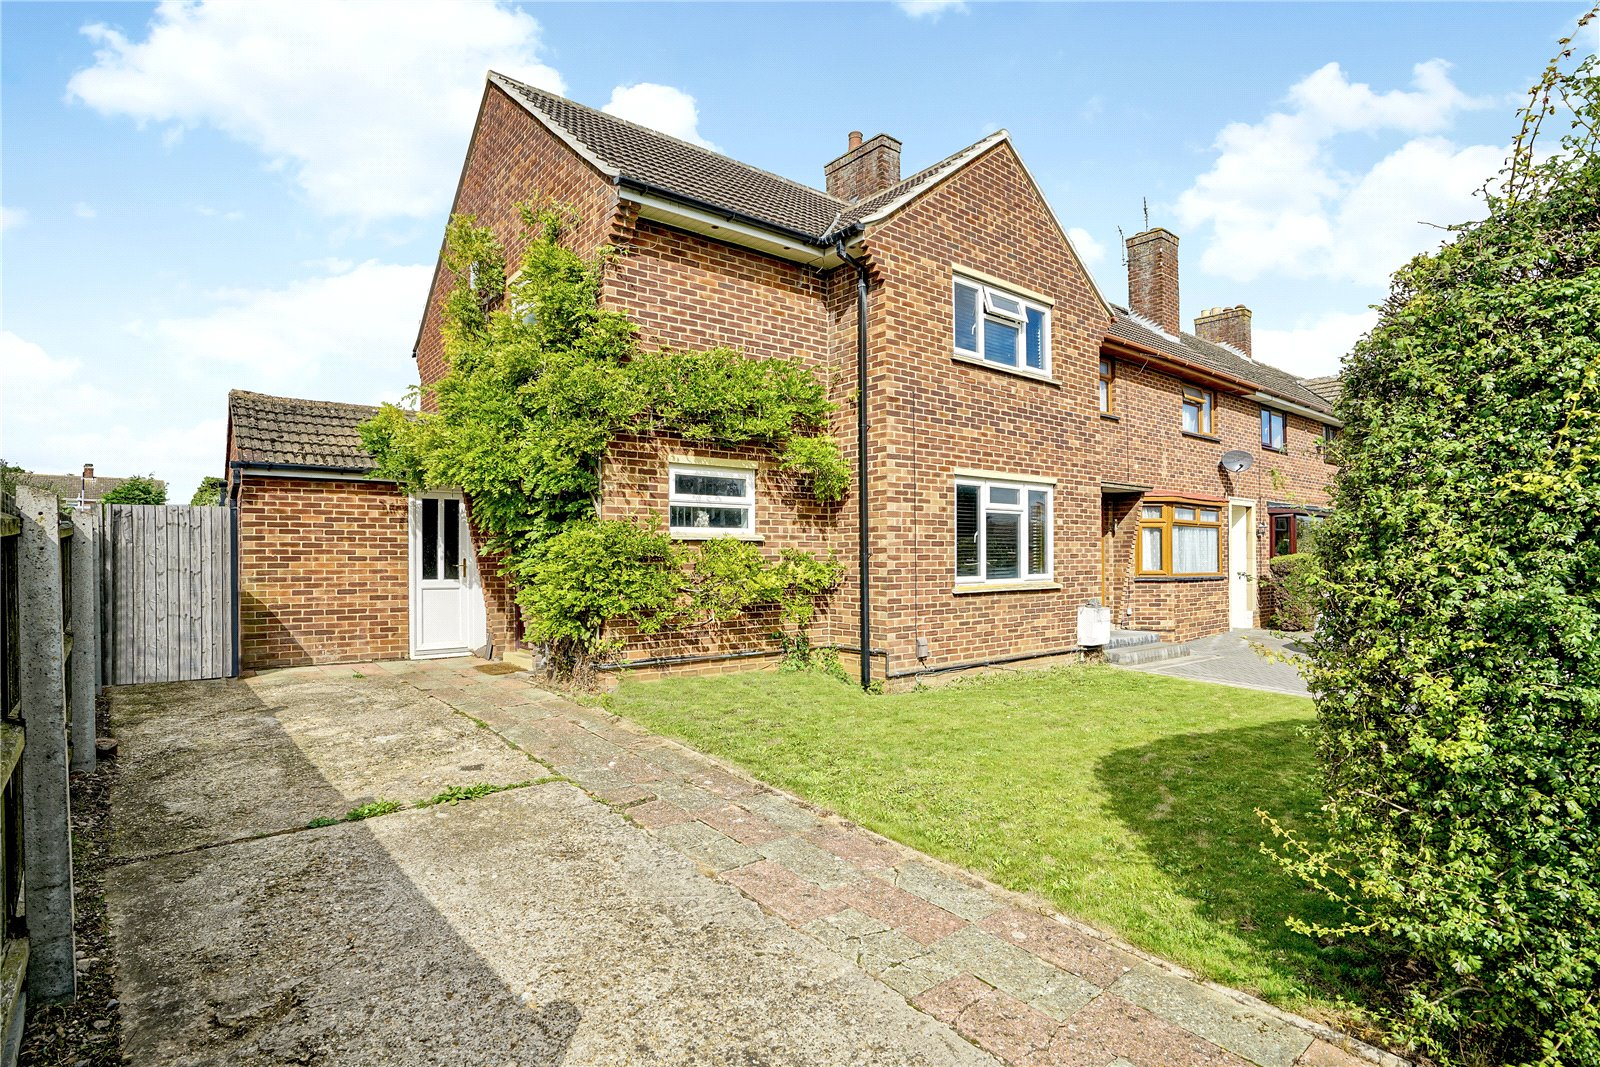 3 bed house for sale in Eaton Socon, PE19 8BY, PE19